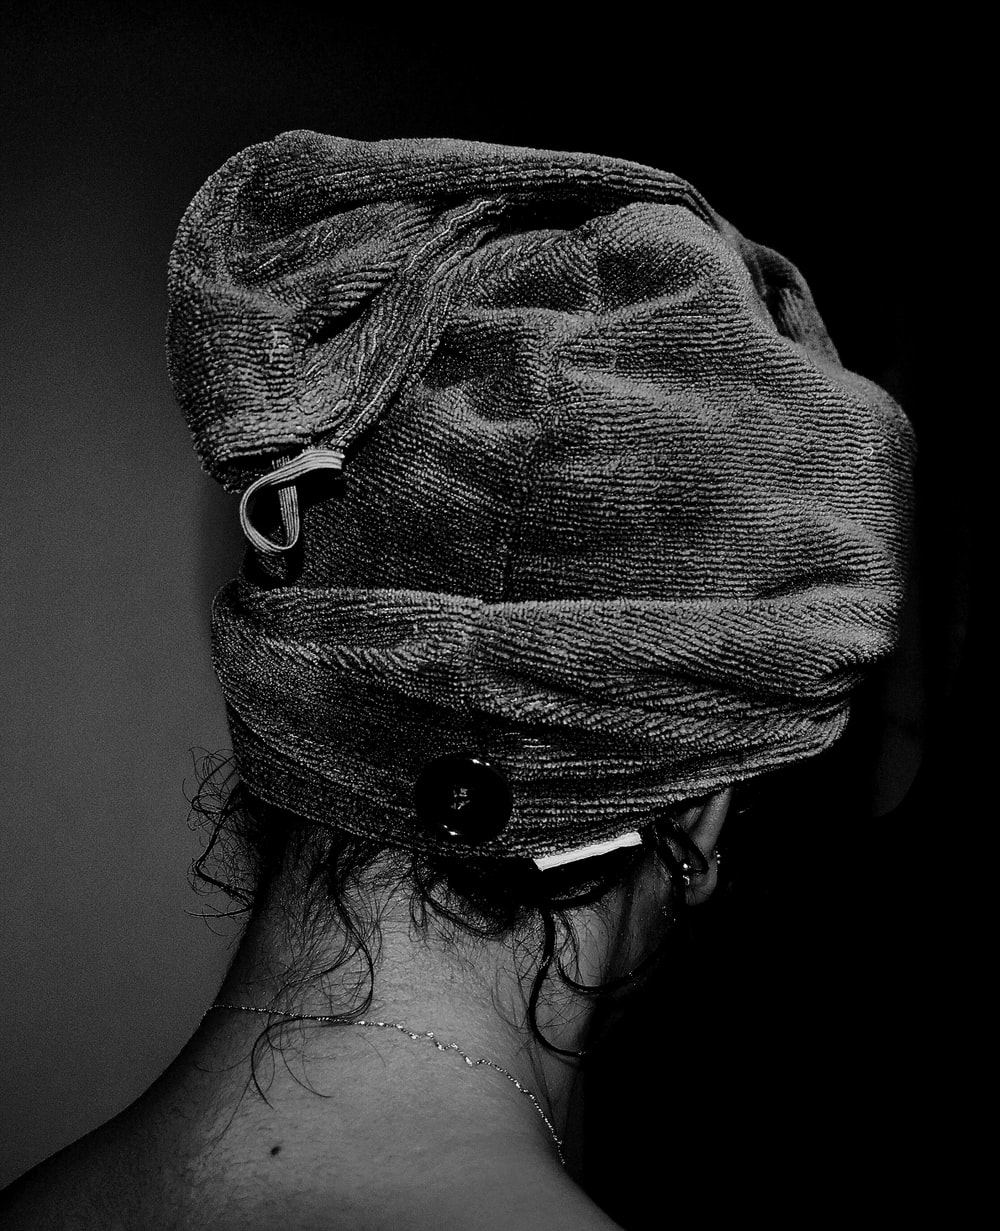 grayscale photo of woman with black and white hair tie